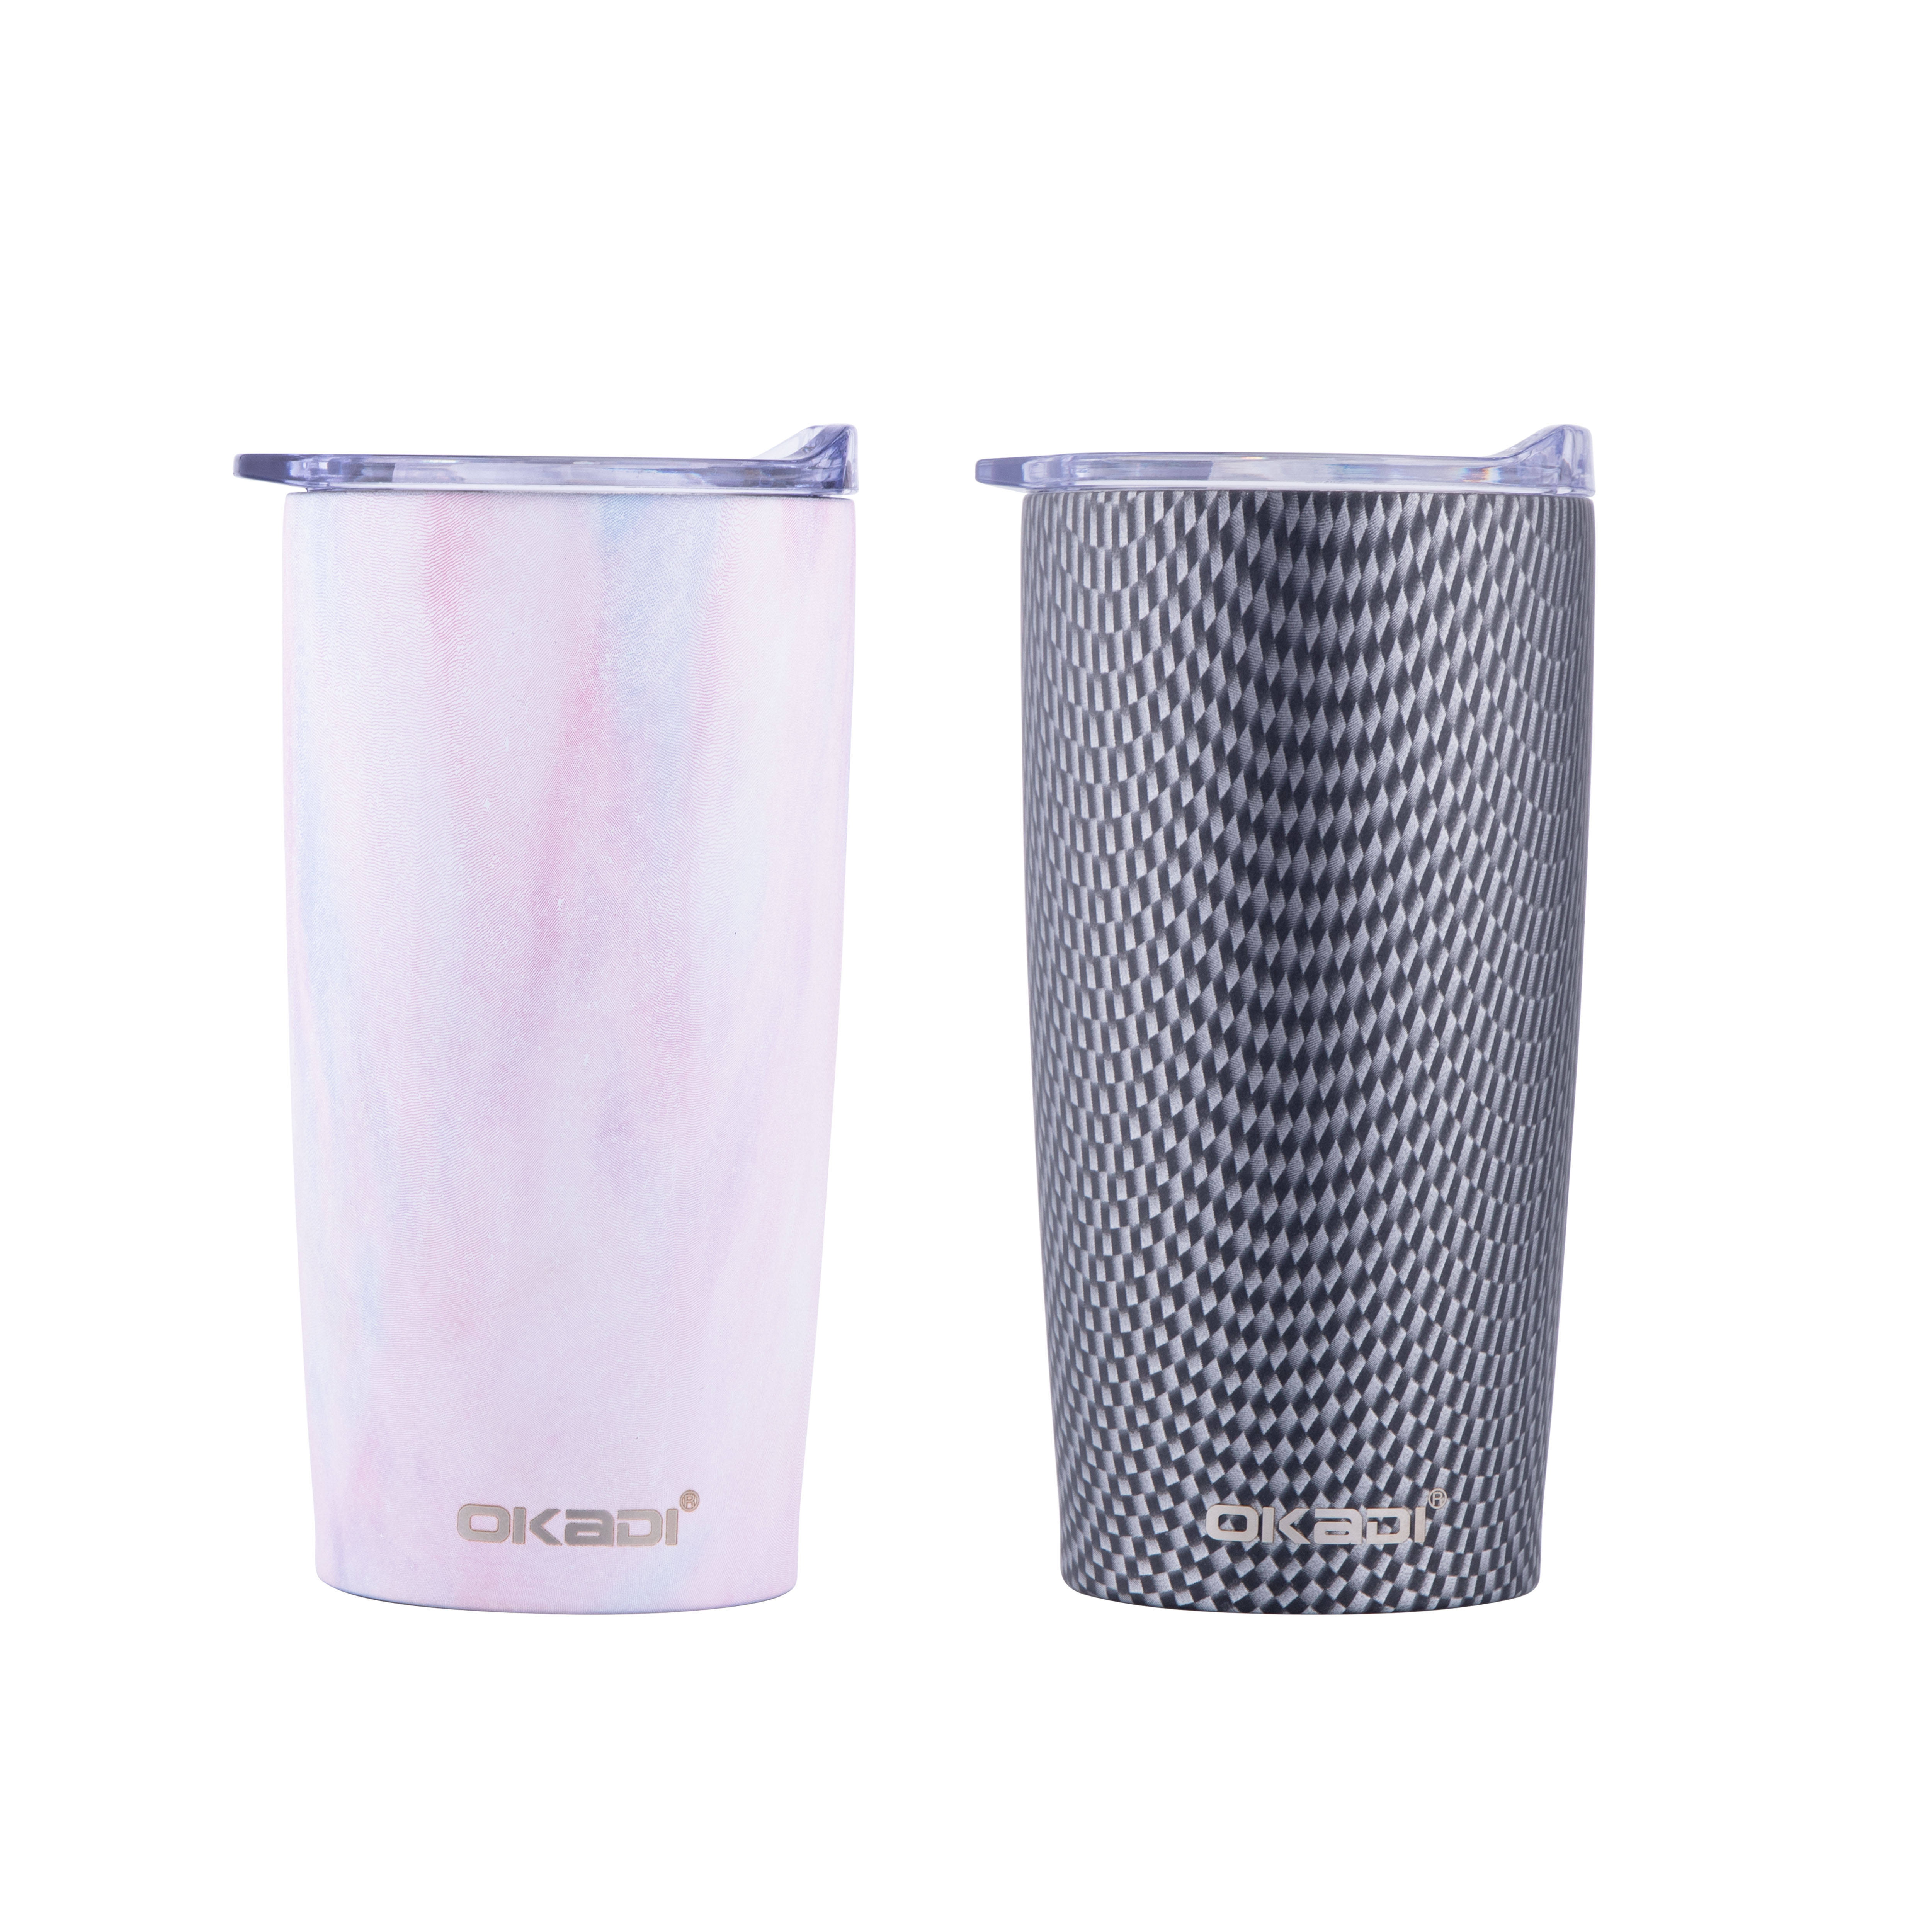 2019 Privated Label 20oz Modern Insulated Tumbler with Straw, Wholesale Stainless Steel Tumbler Cups